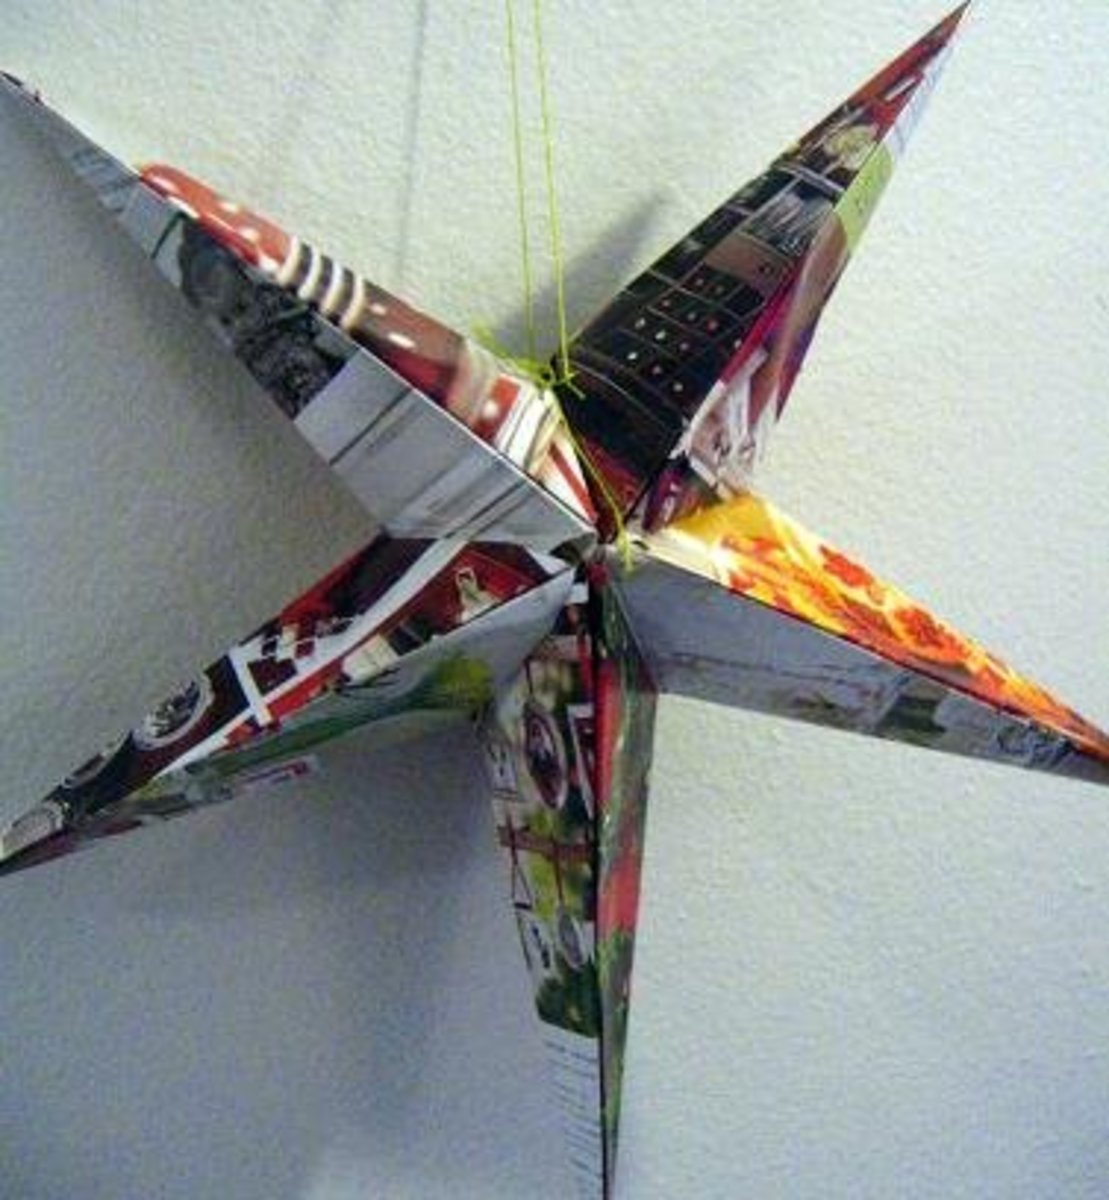 junk-mail-arts-crafts-recycle-unique-paper-projects